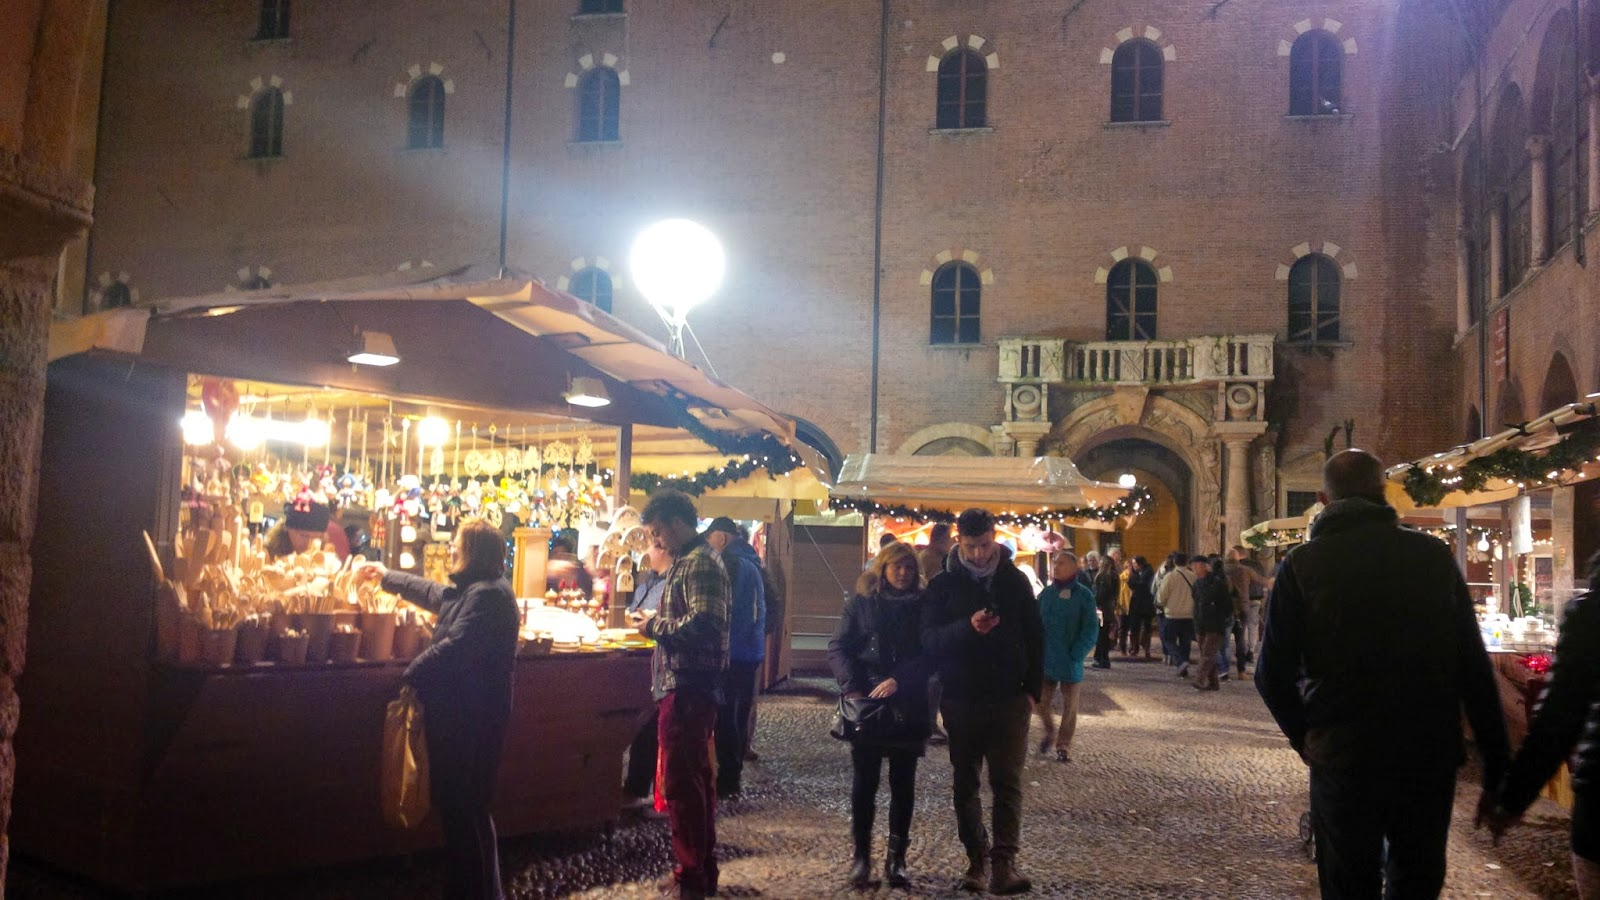 Stalls at the Christmas market in Verona